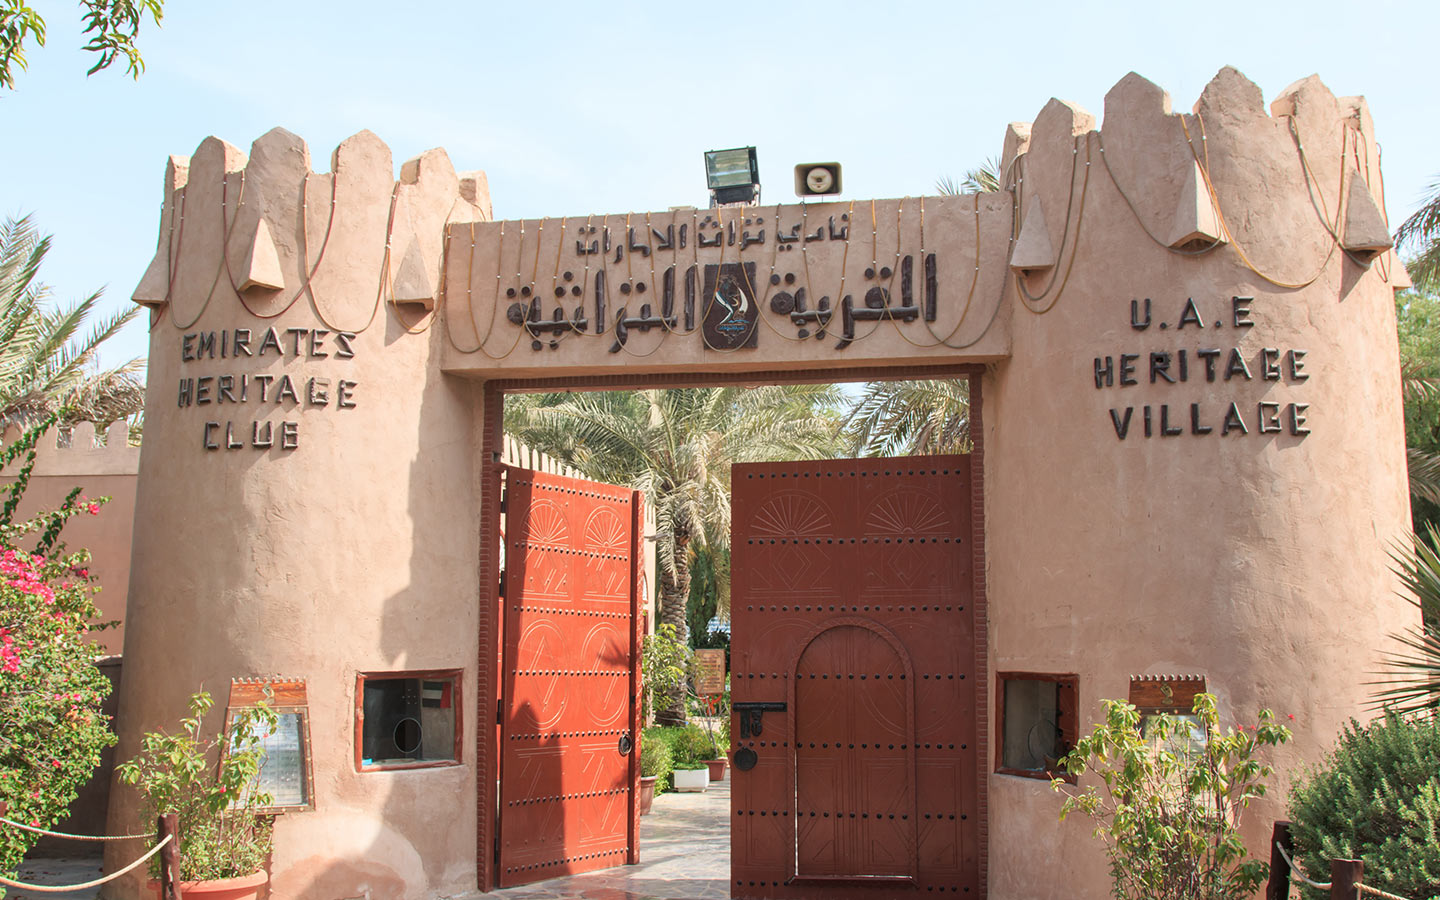 Another popular area is the Heritage Village in Abu Dhabi.